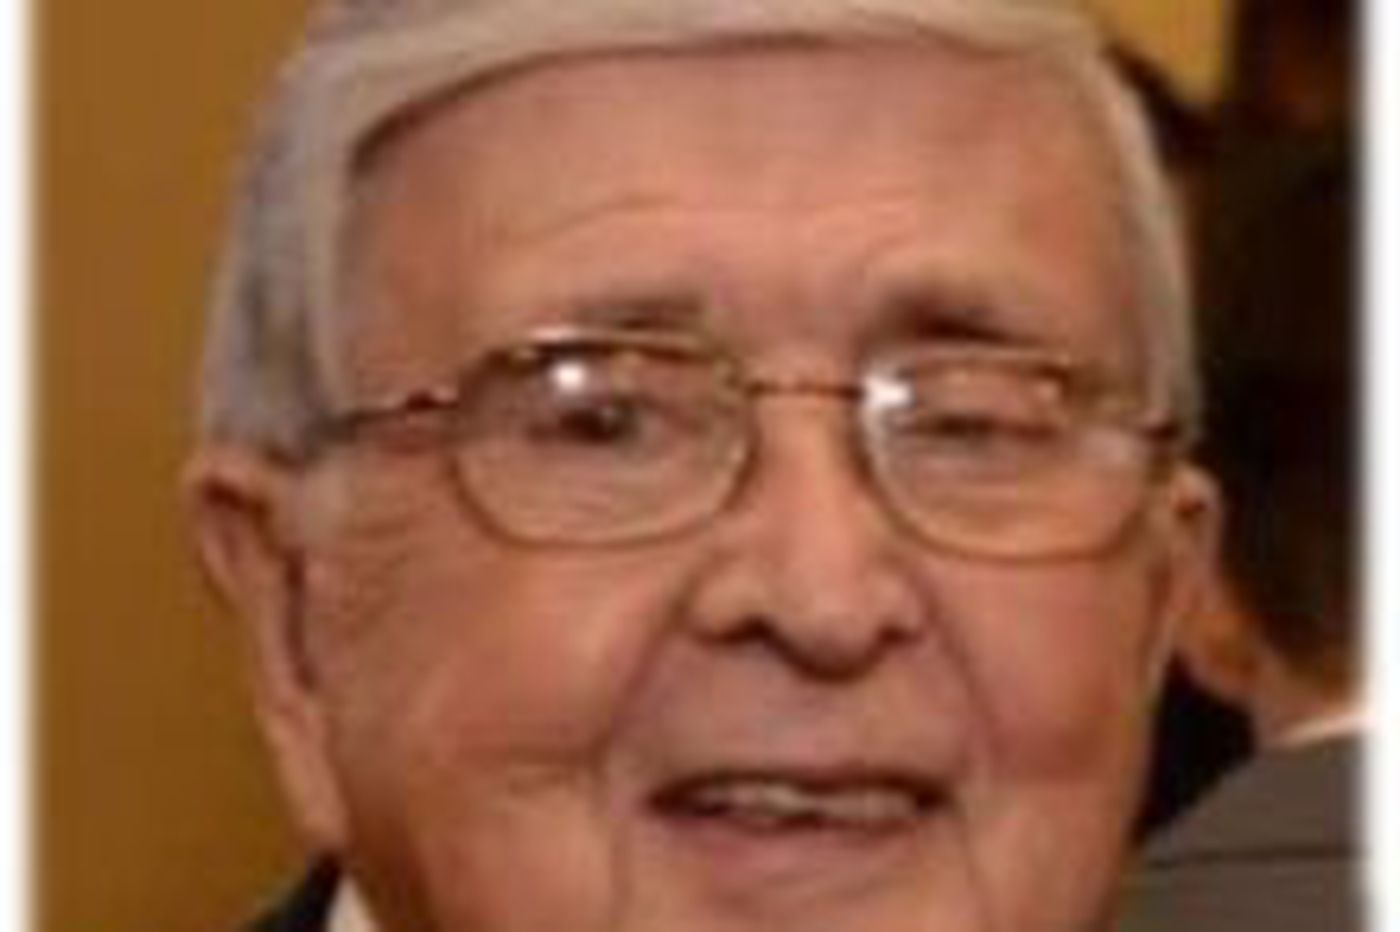 John A. Pergolin, 87, winning Catholic school coach and university financial aid director